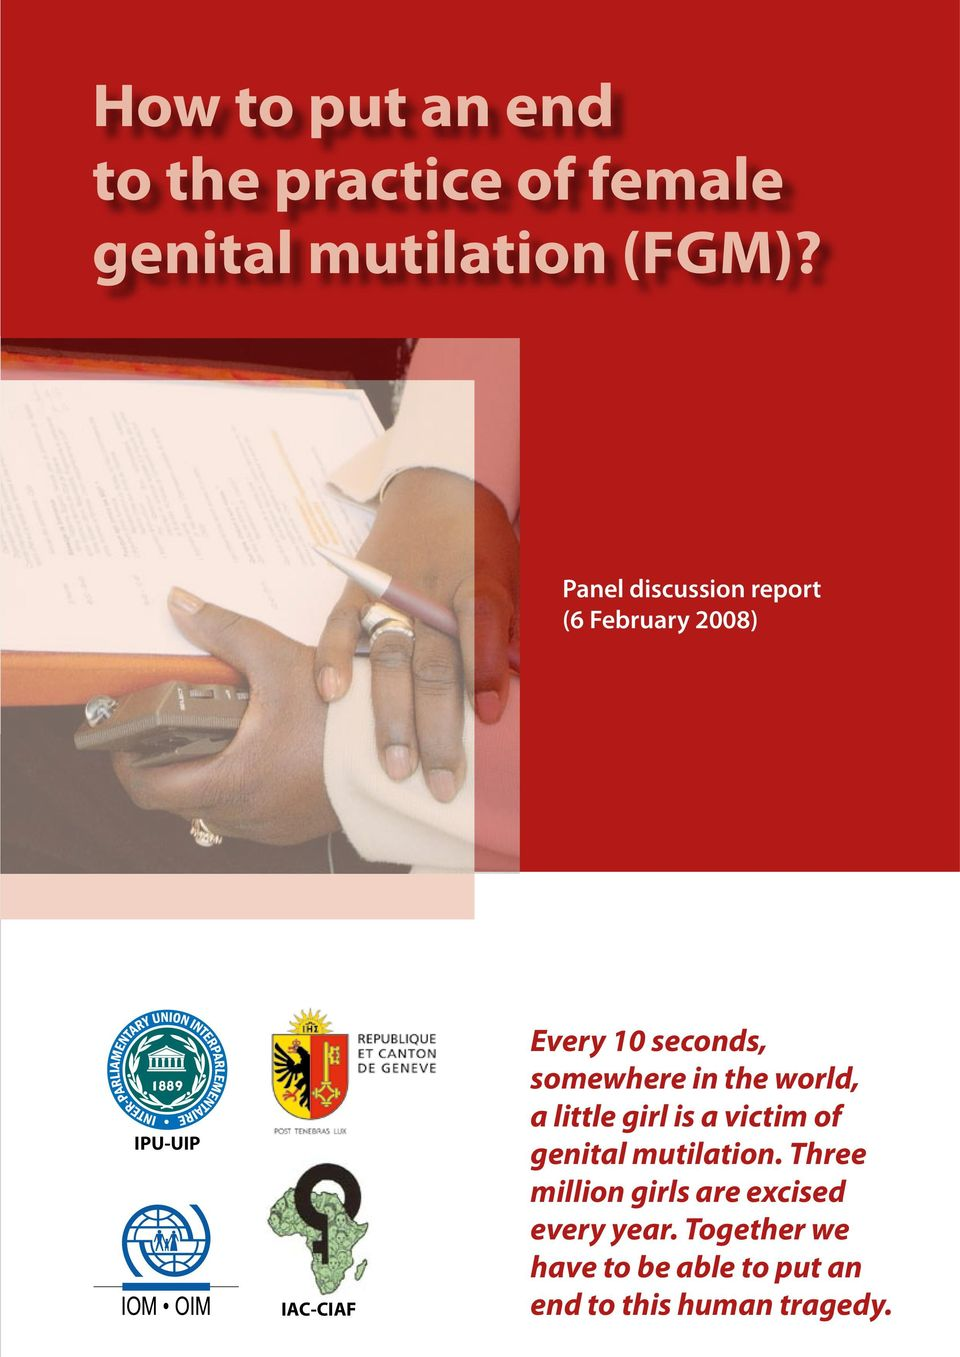 somewhere in the world, a little girl is a victim of genital mutilation.